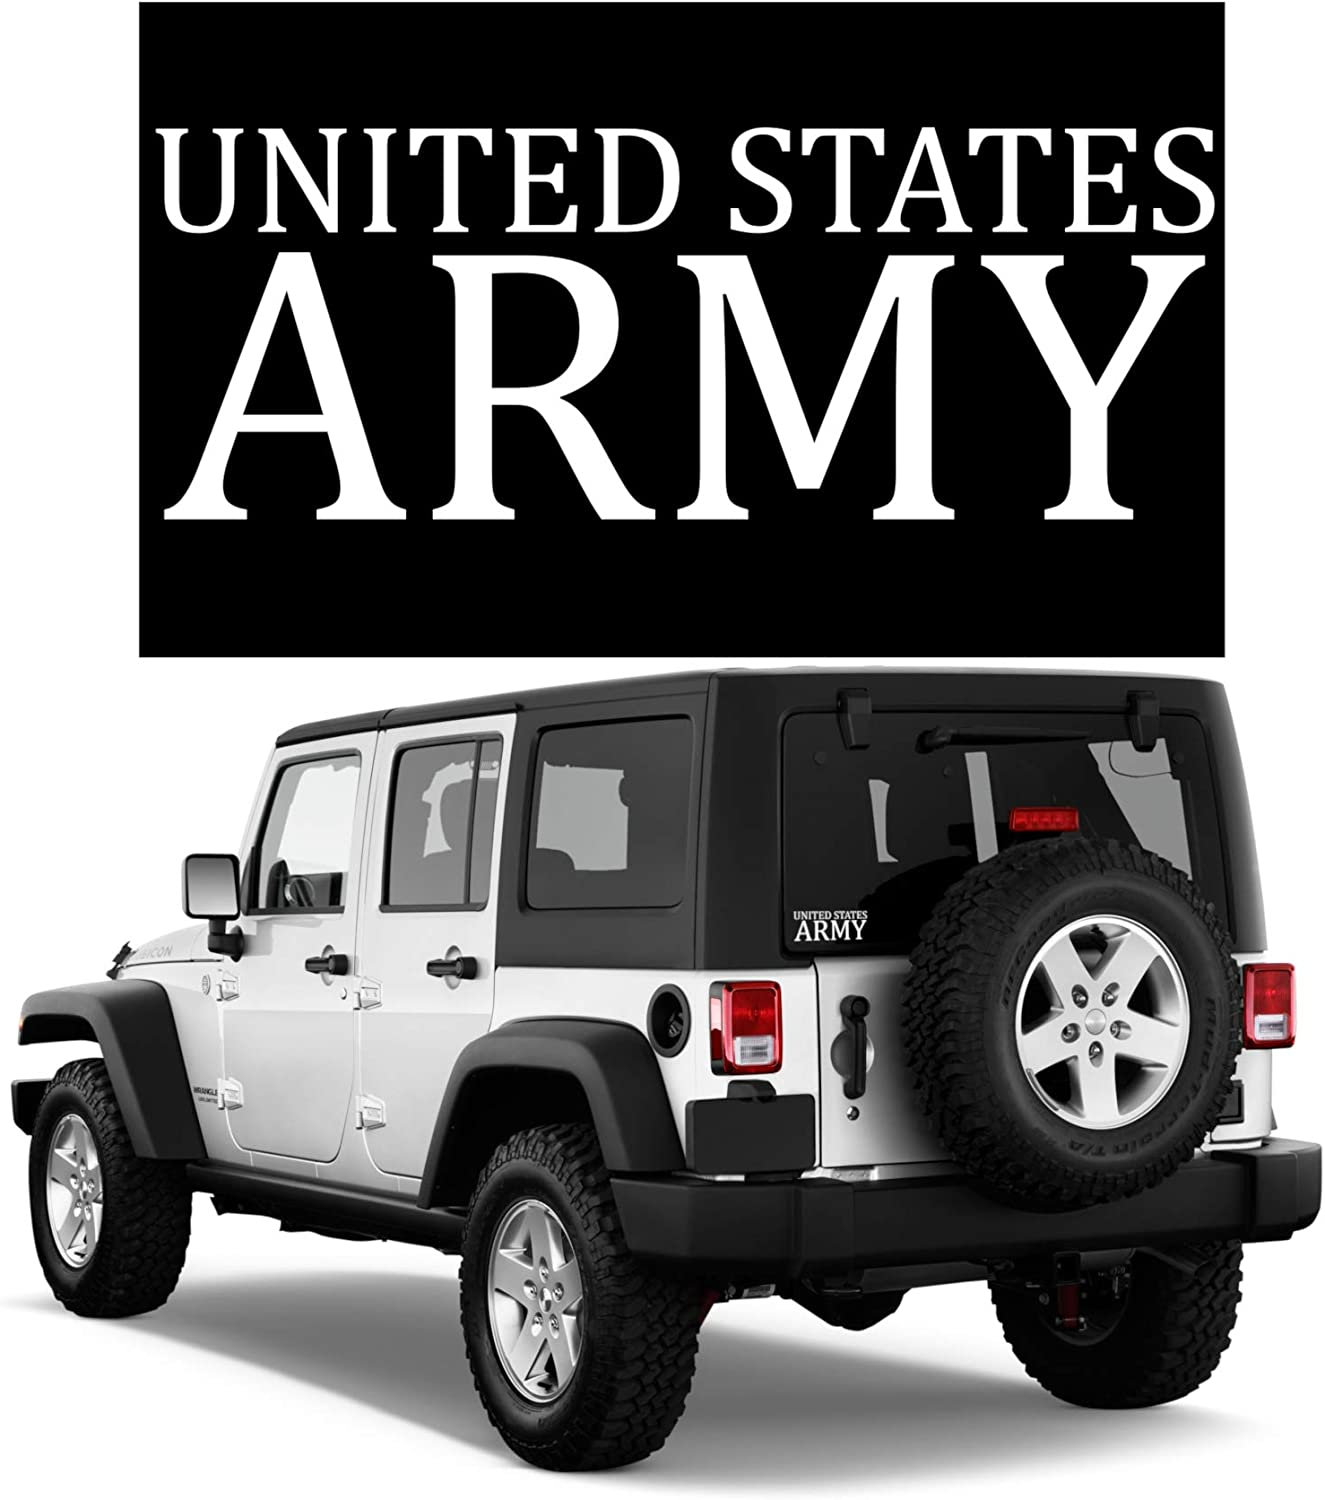 BriCals Vinyl Decals US Army Military Car & Truck Window Decal Sticker, White, Vinyl 5.45x2, 5 Year Outdoor, Made in USA, for Windows, Bumper, Bottle, Laptop, Tablet, Etc.